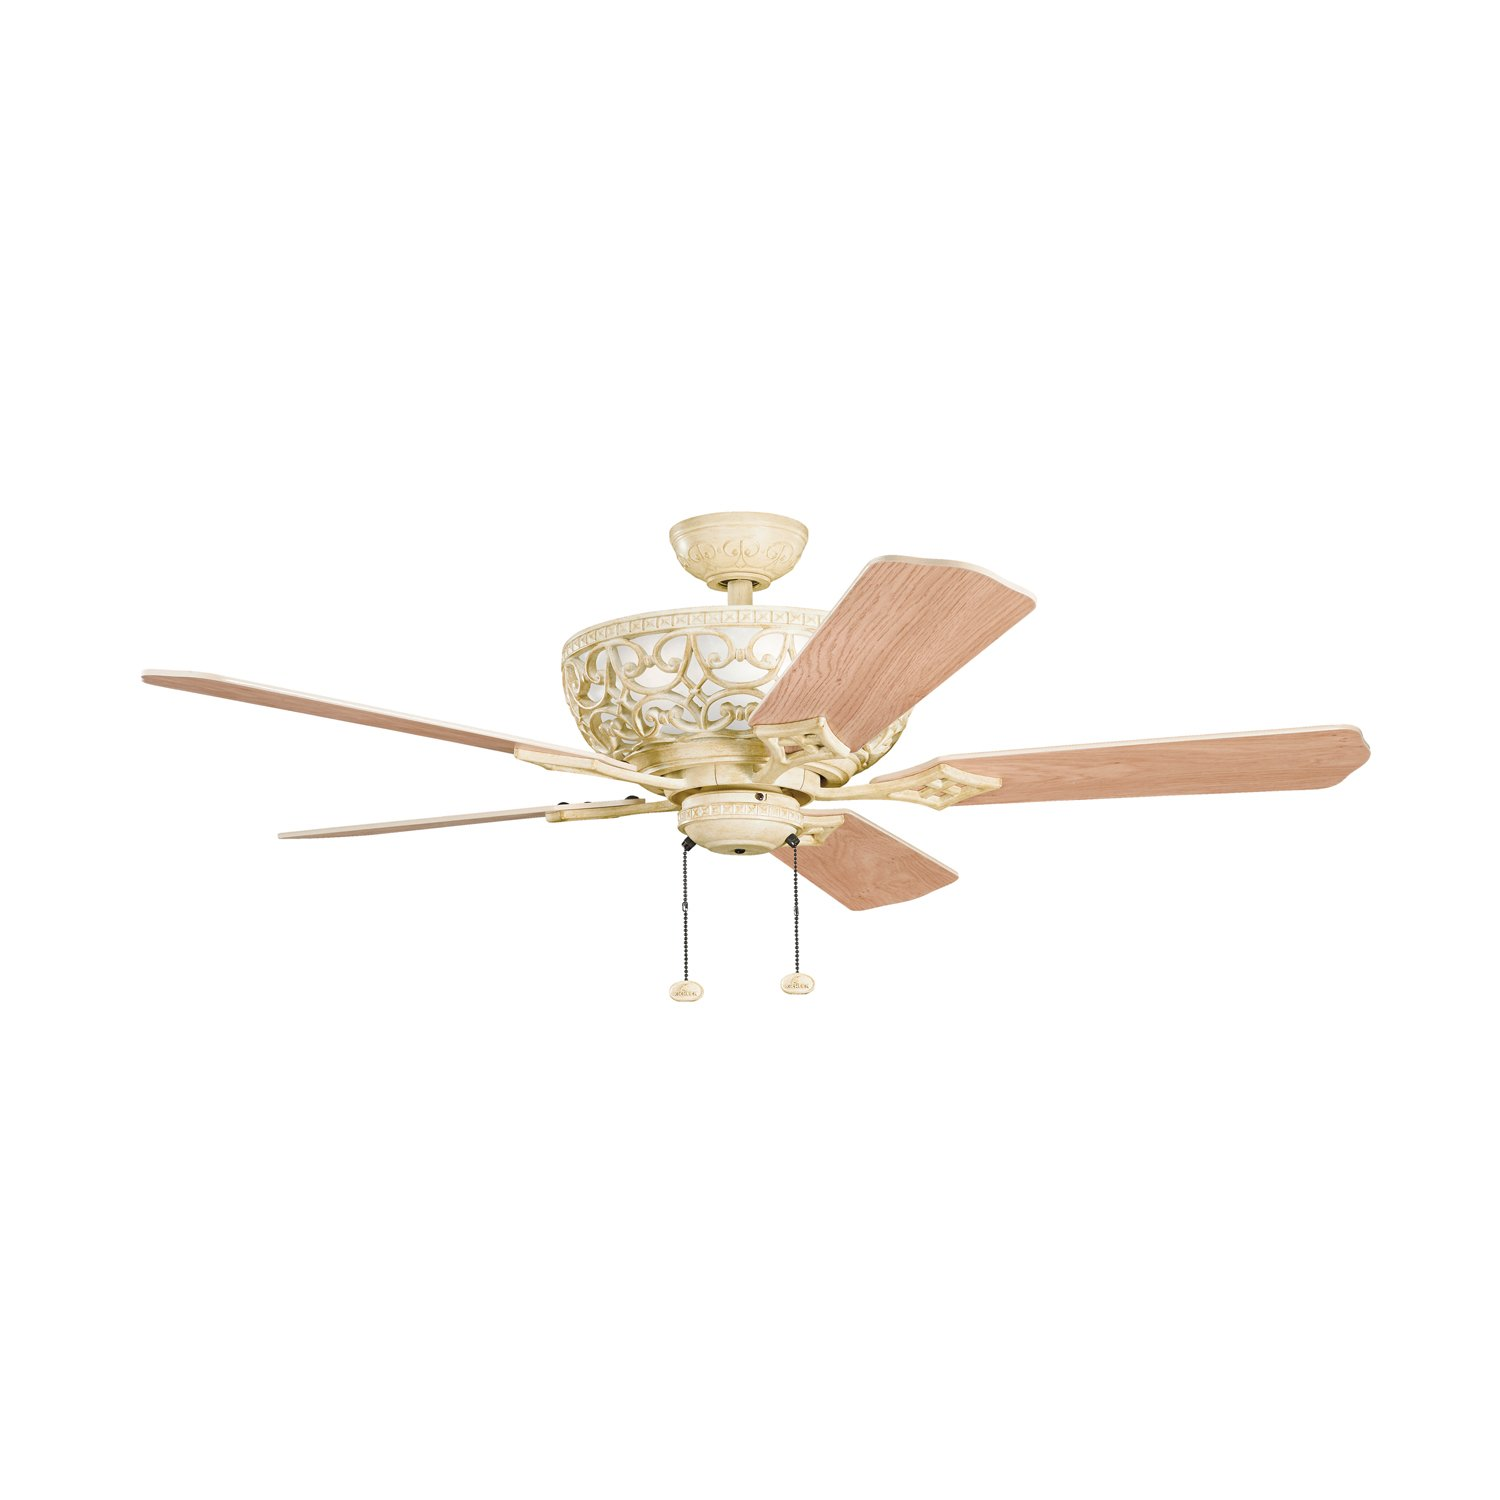 Kichler AW 52 Ceiling Fan Amazon